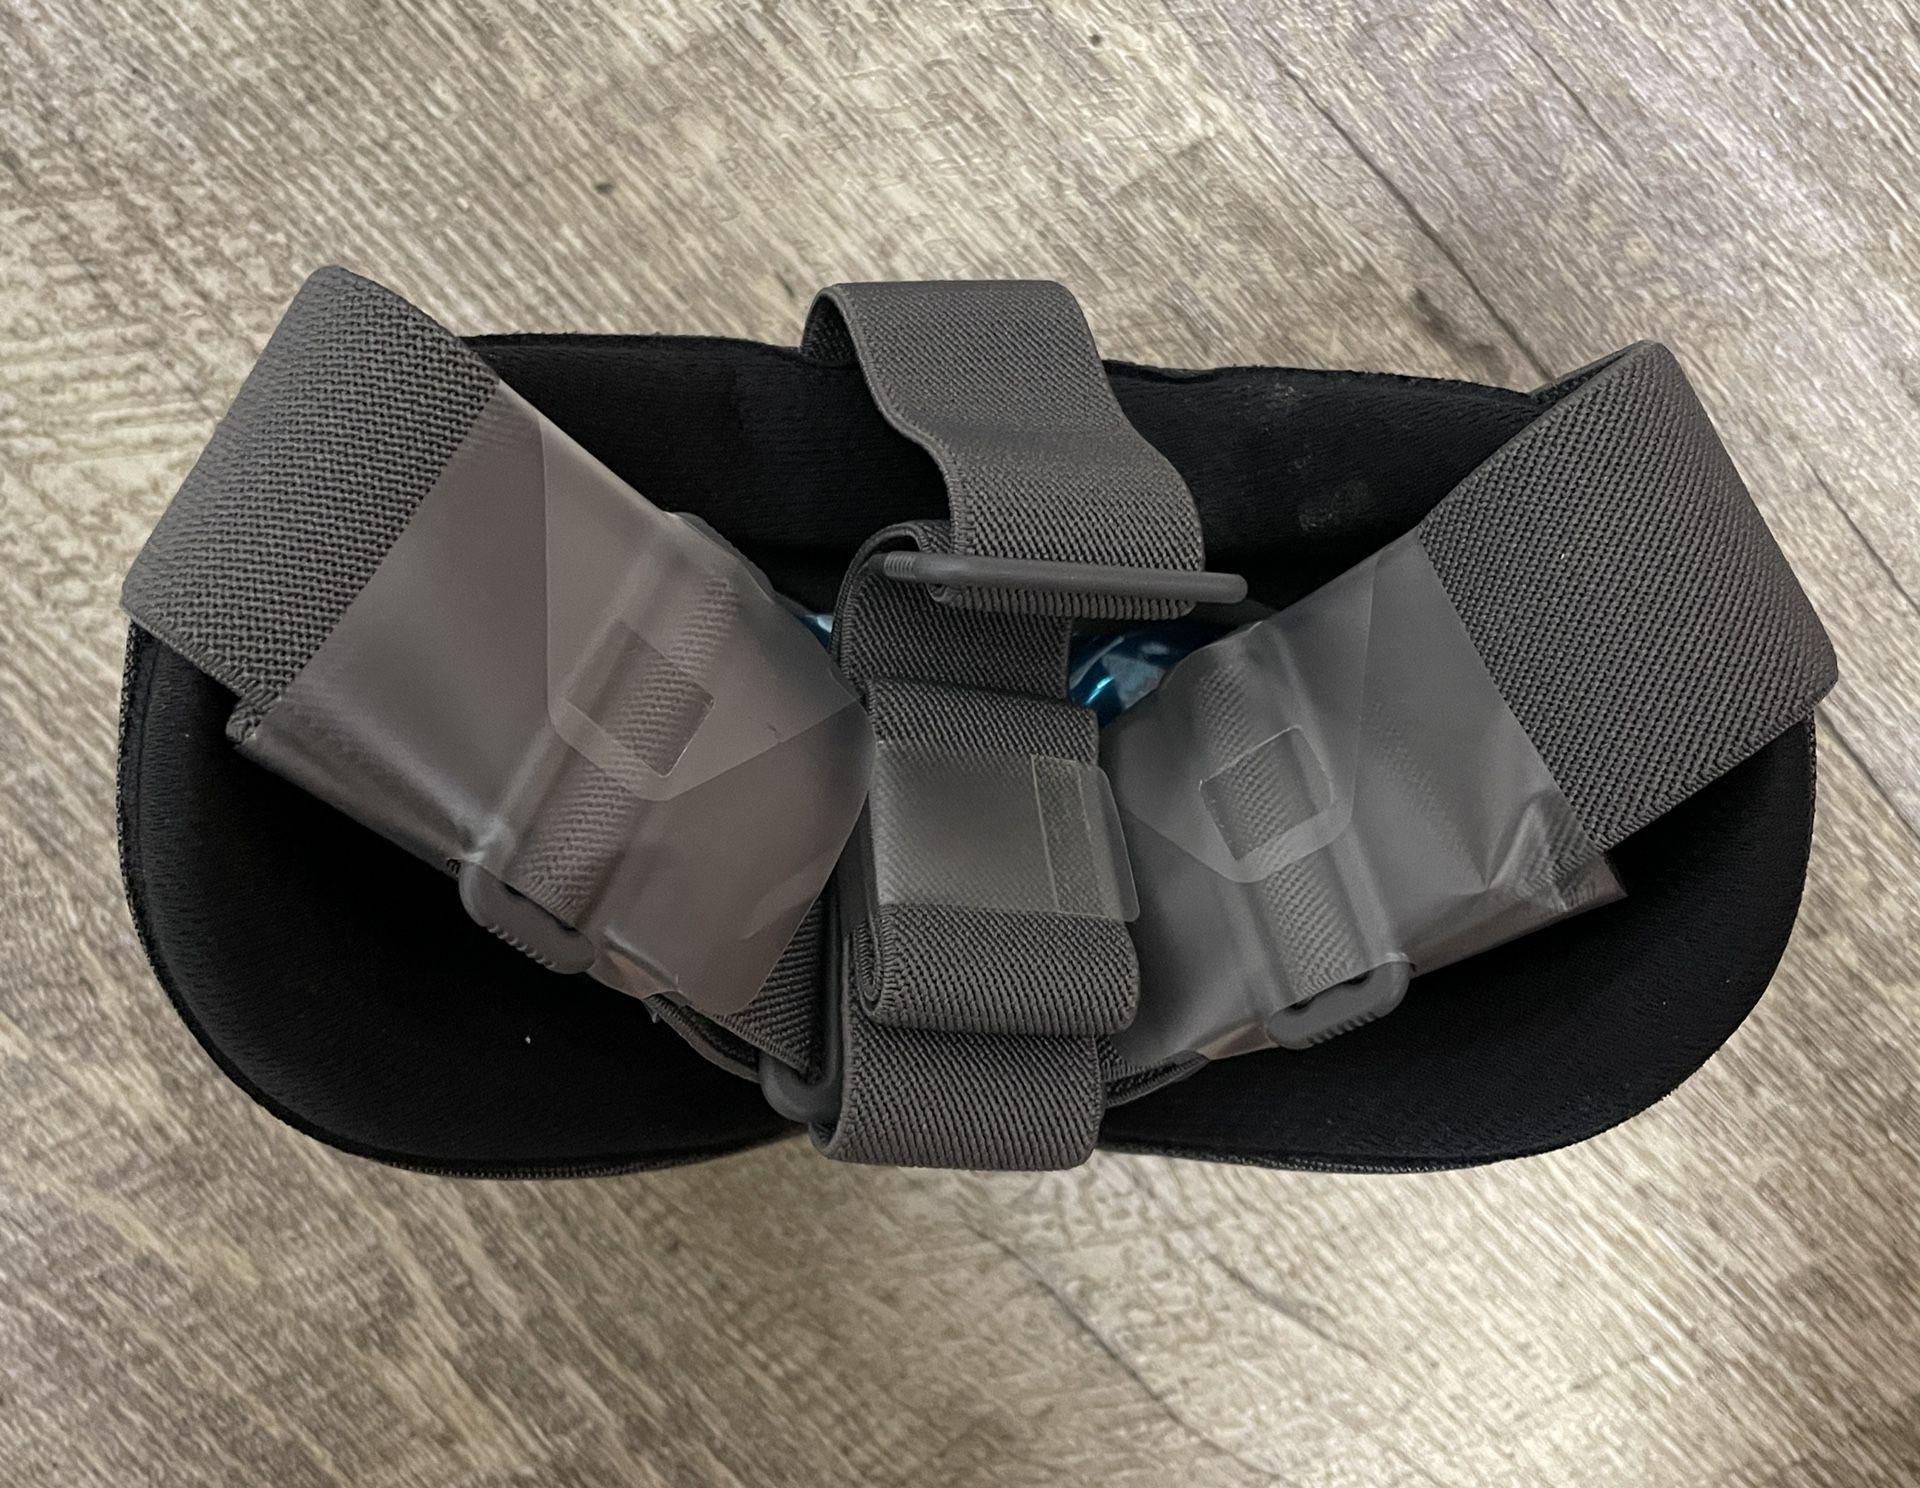 Google Daydream View Mobile VR Headset - New In Box